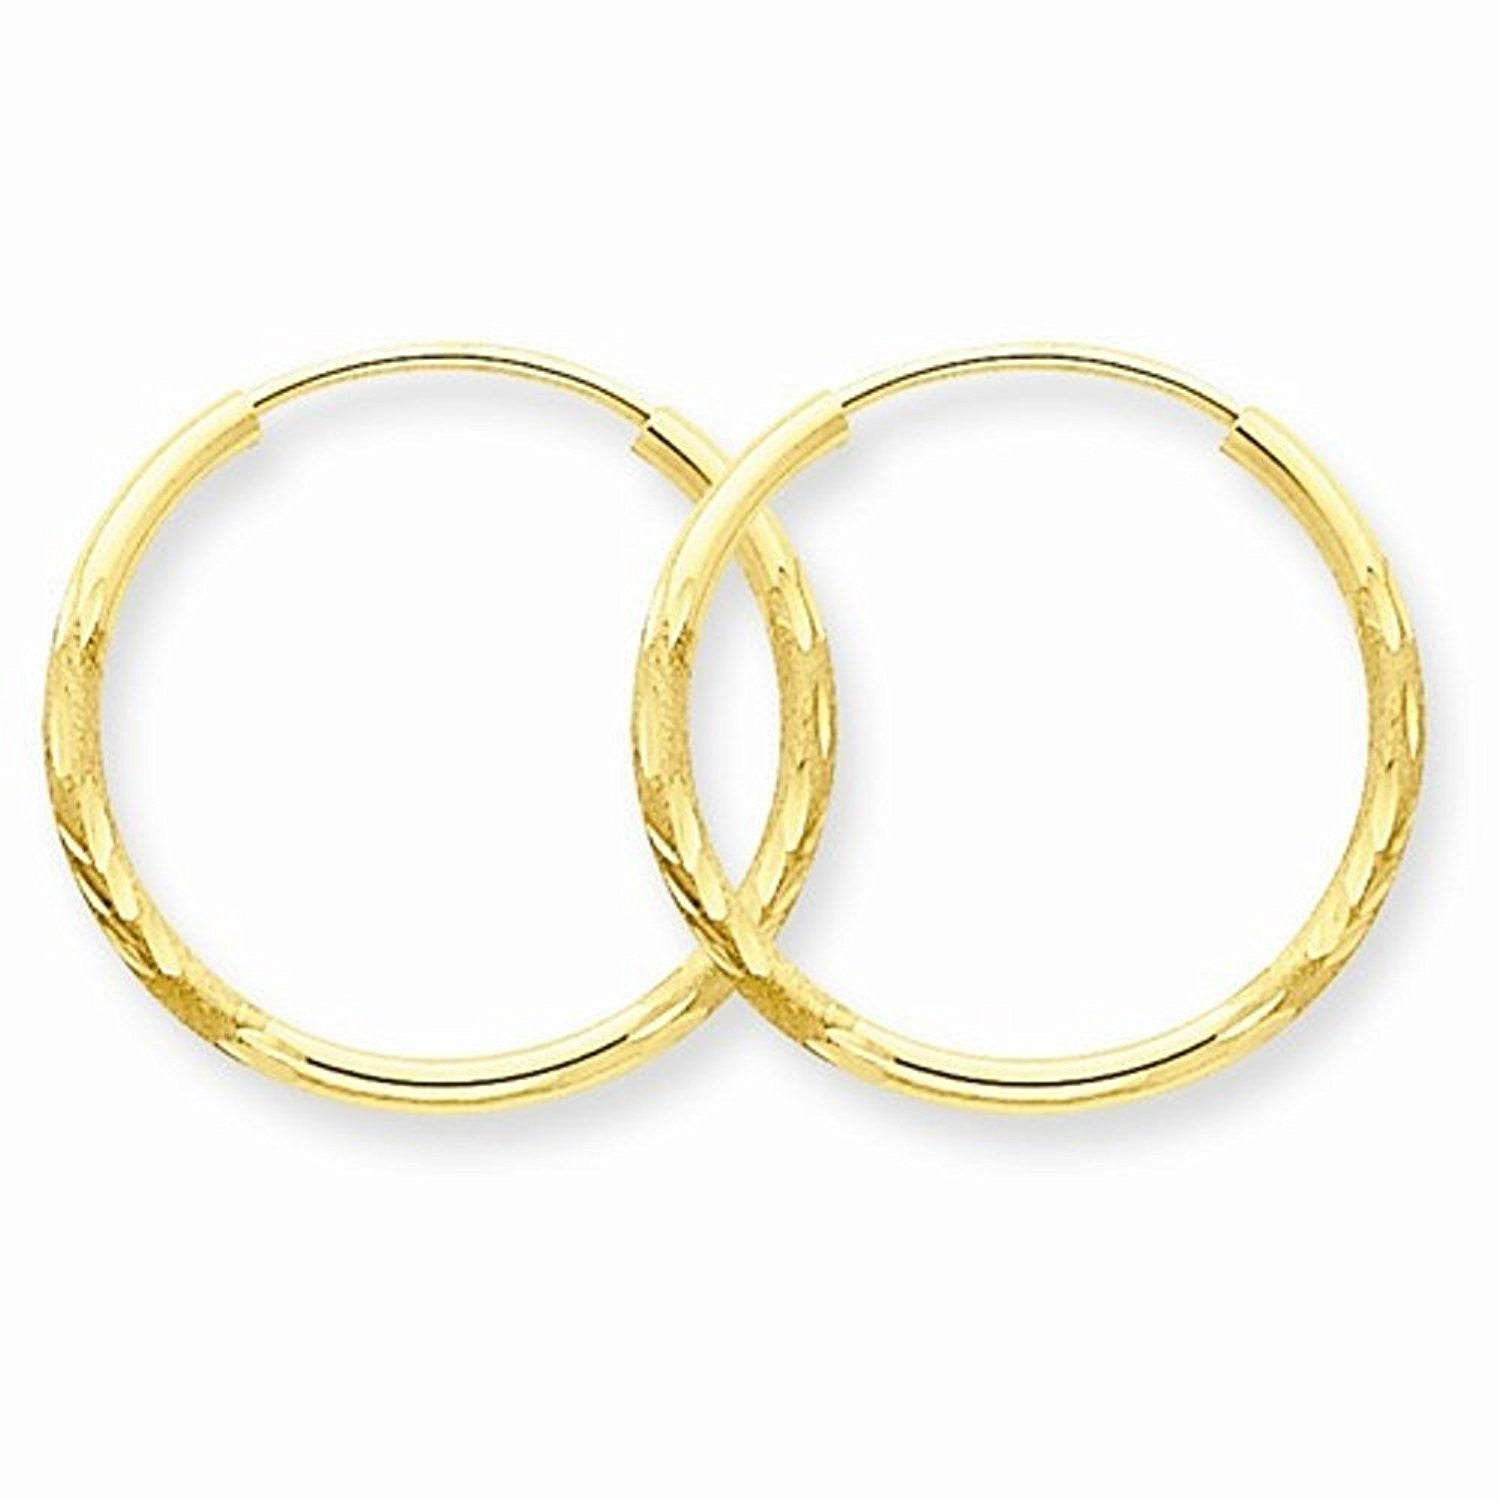 14K Yellow Gold 17mm x 1.5mm Round Endless Hoop Earrings